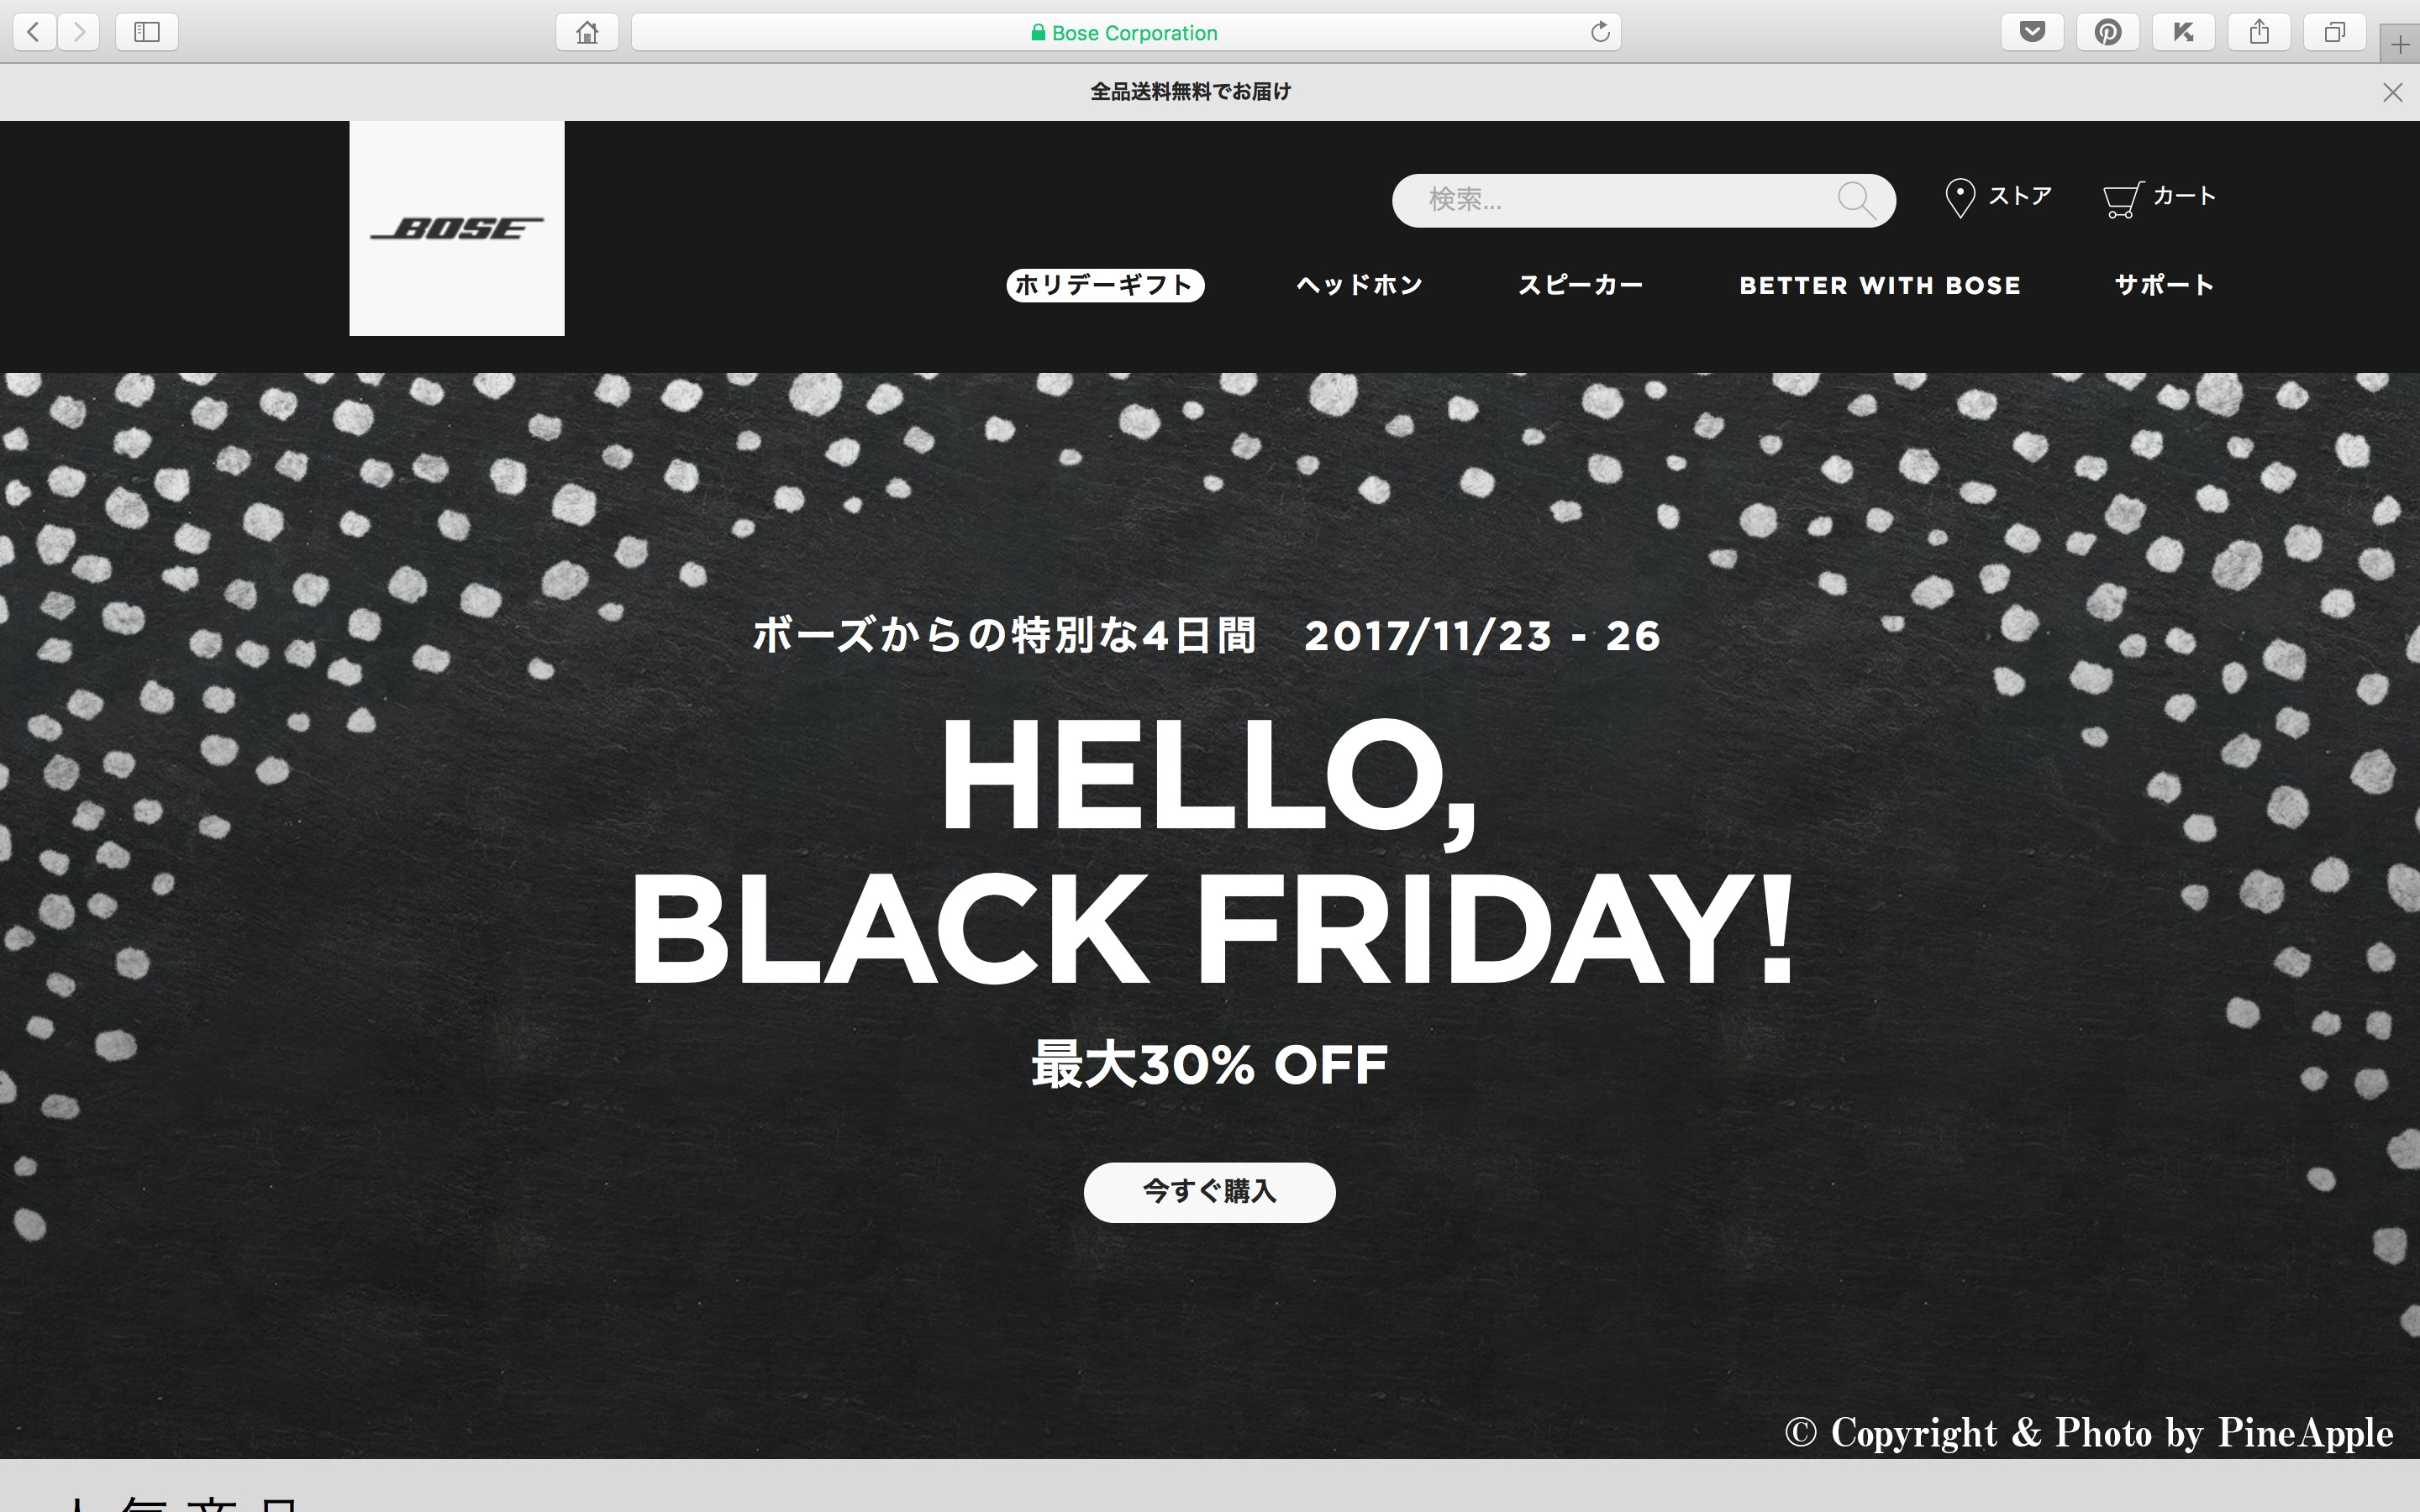 HELLO, BLACK FRIDAY!